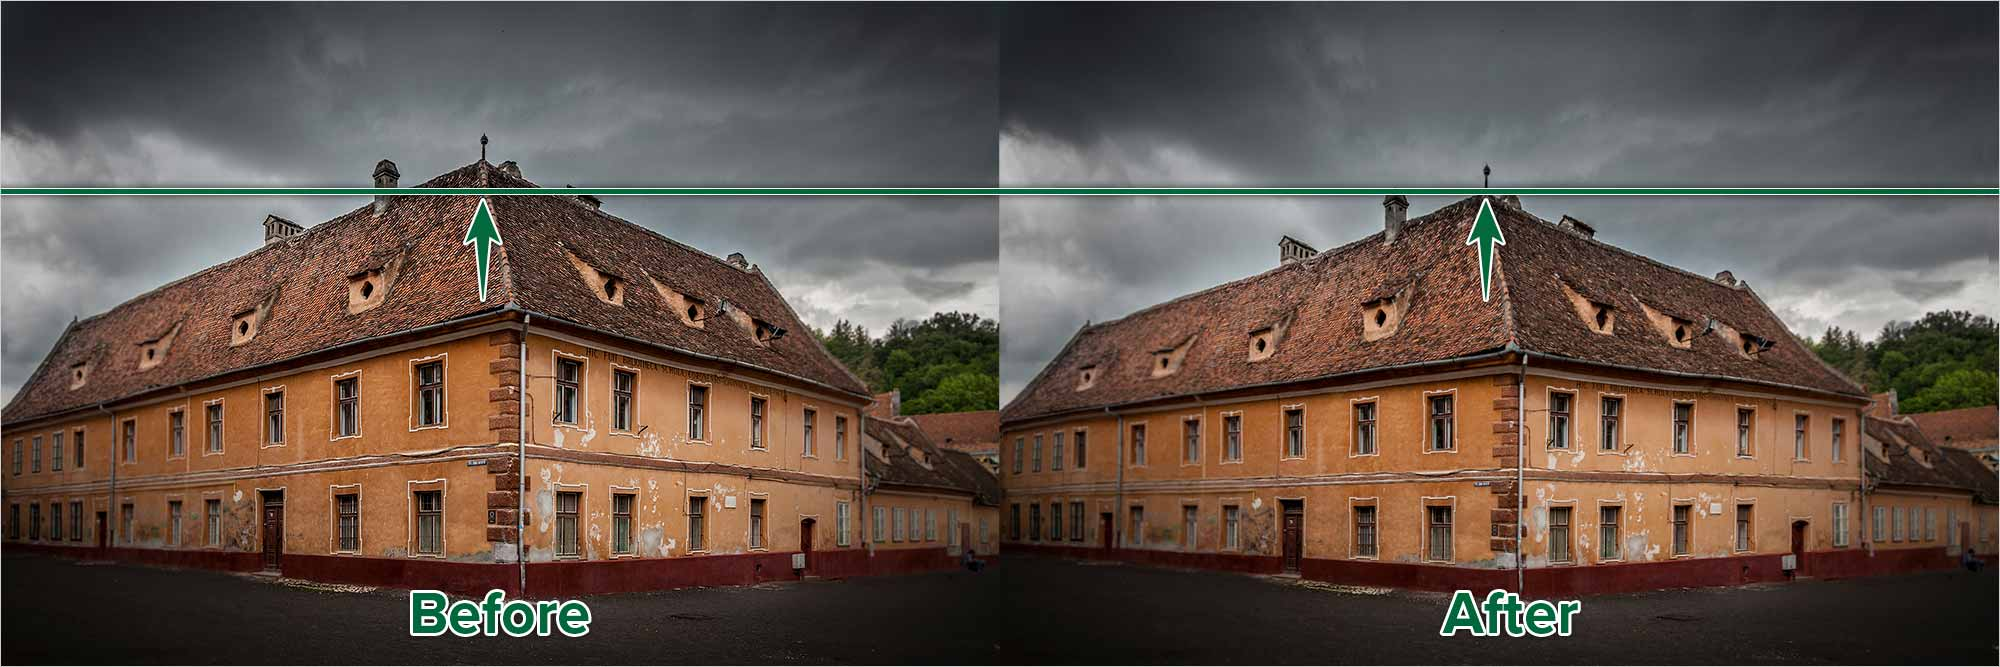 photoshop-transforms-perspective-exercise